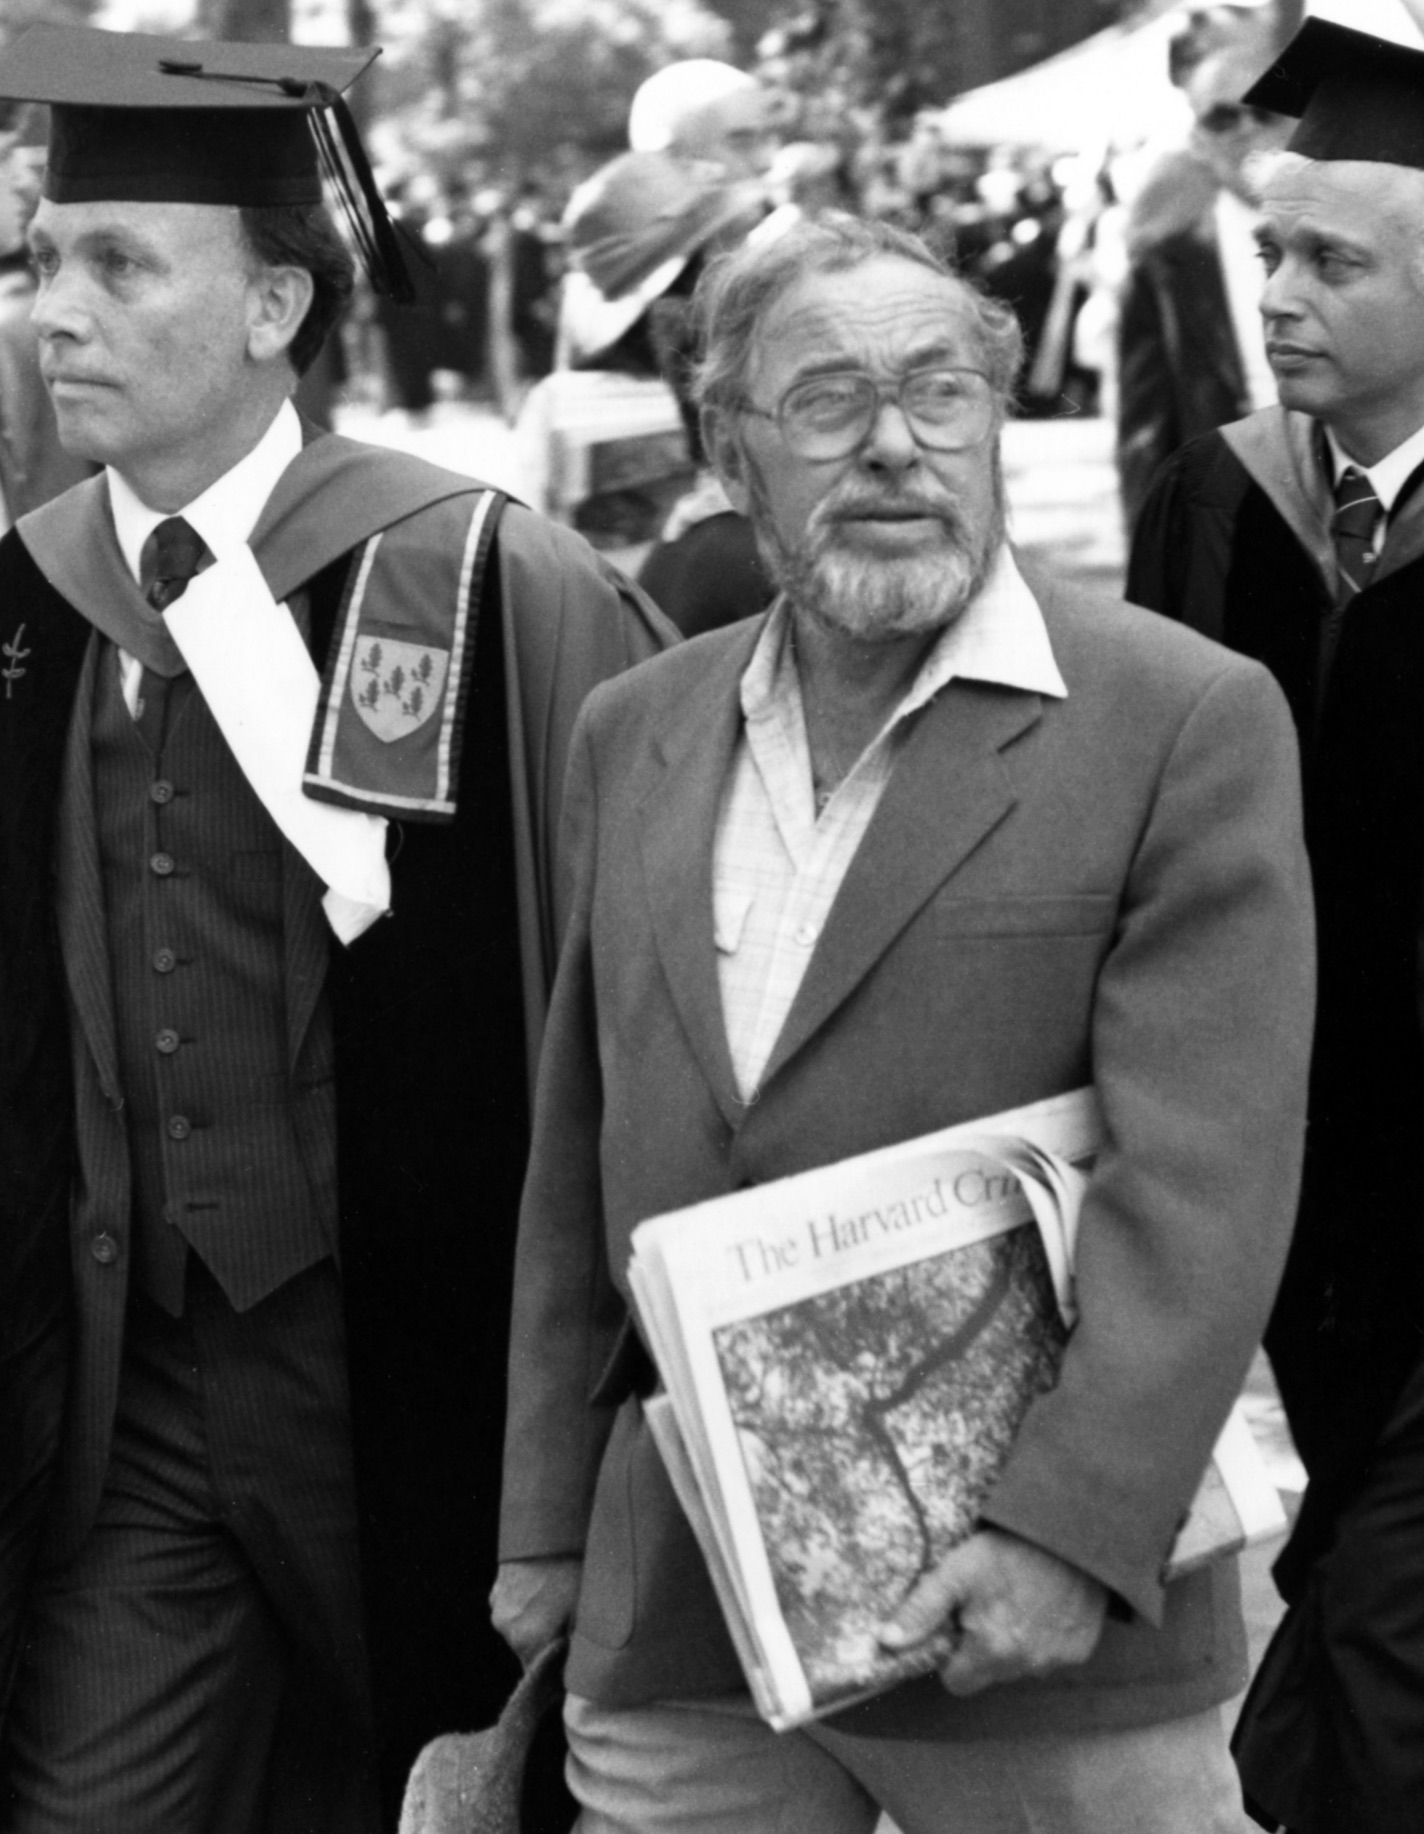 TENNESSEE WILLIAMS DURING COMMENCEMENT EXERCISES AT HARVARD, 1982. PHOTOGRAPH BY RICK STAFFORD